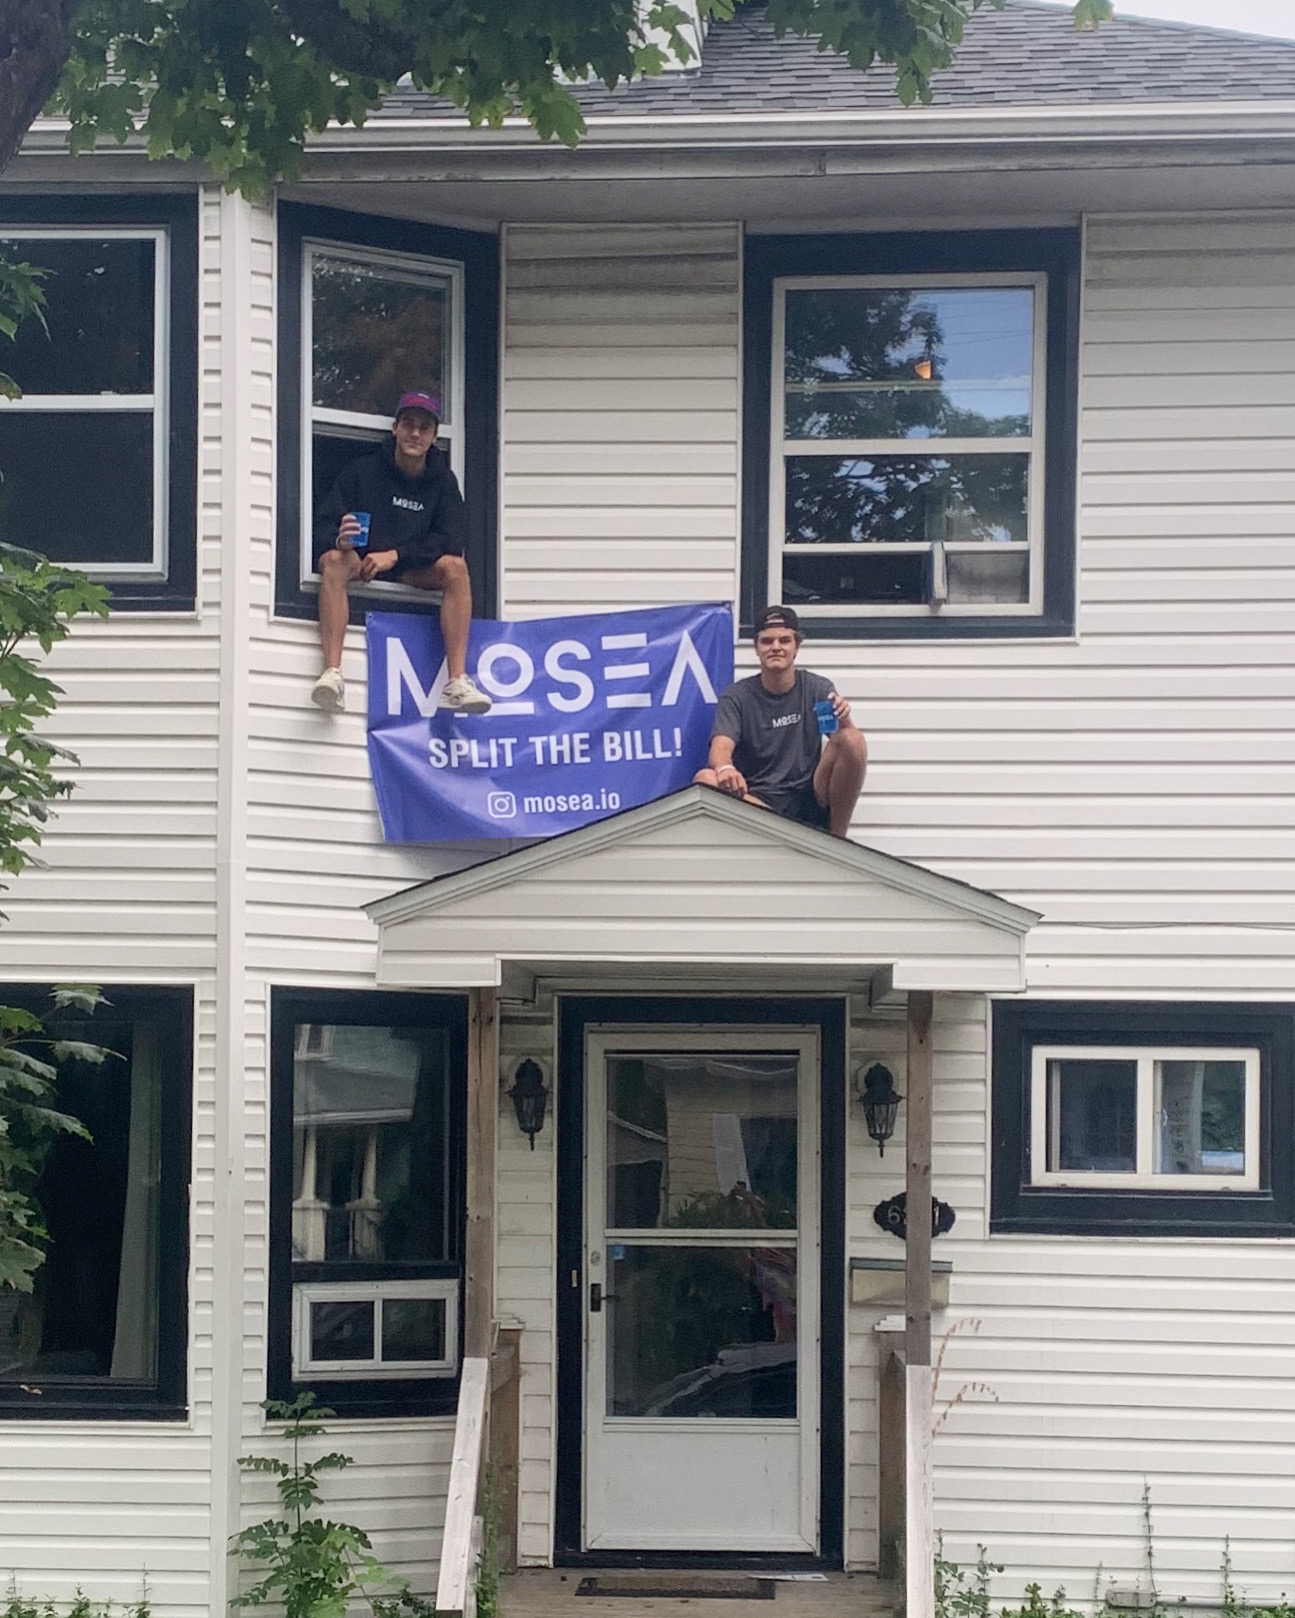 Student house on Aberdeen with Mosea banner